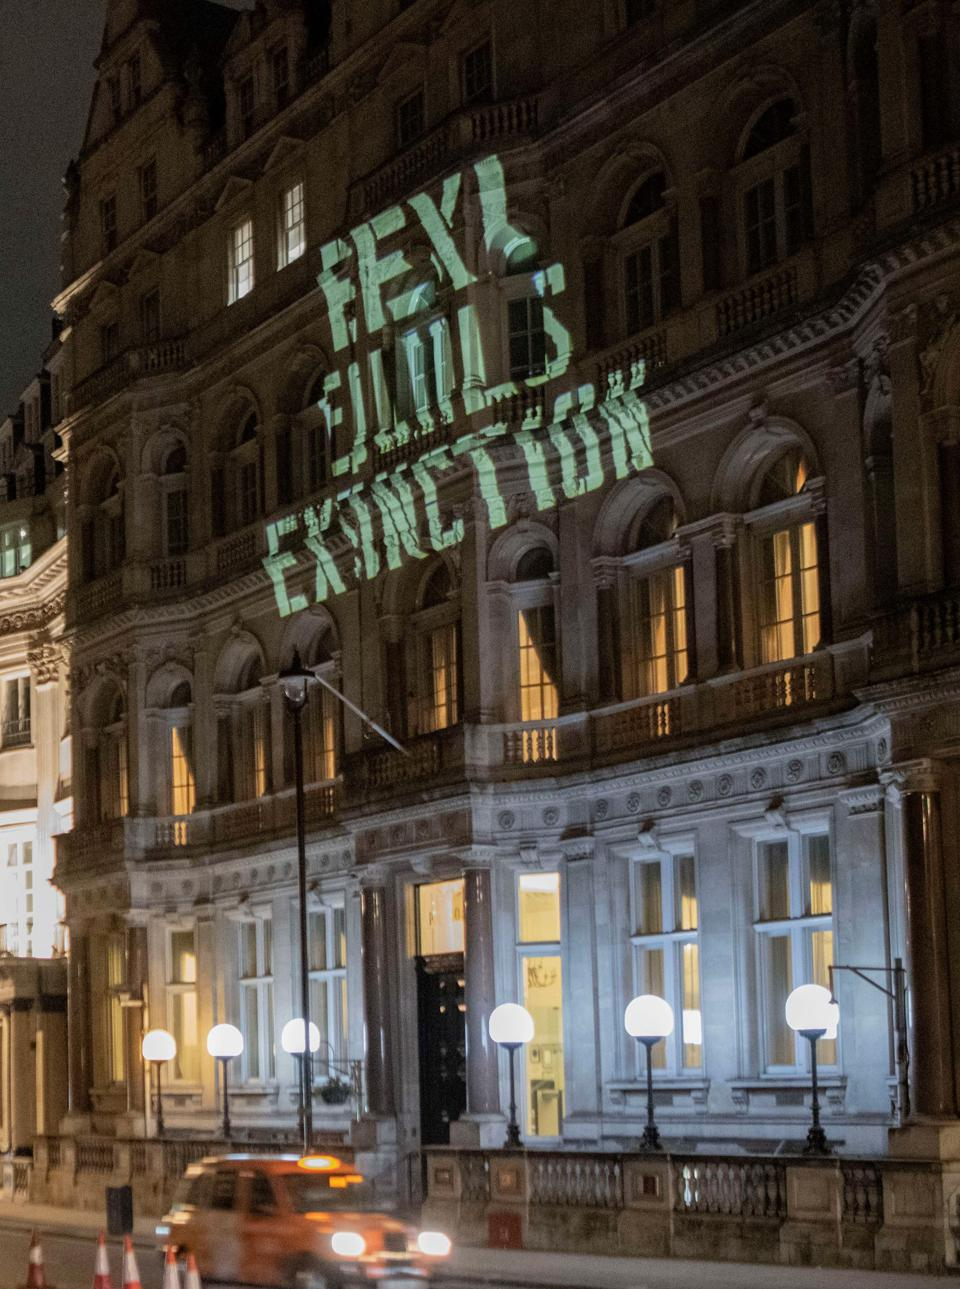 19 Oct: EEXI = Extinction. A protest sign projected against the Japanese embassy in London in protest at Japan's watered down proposal against climate change.